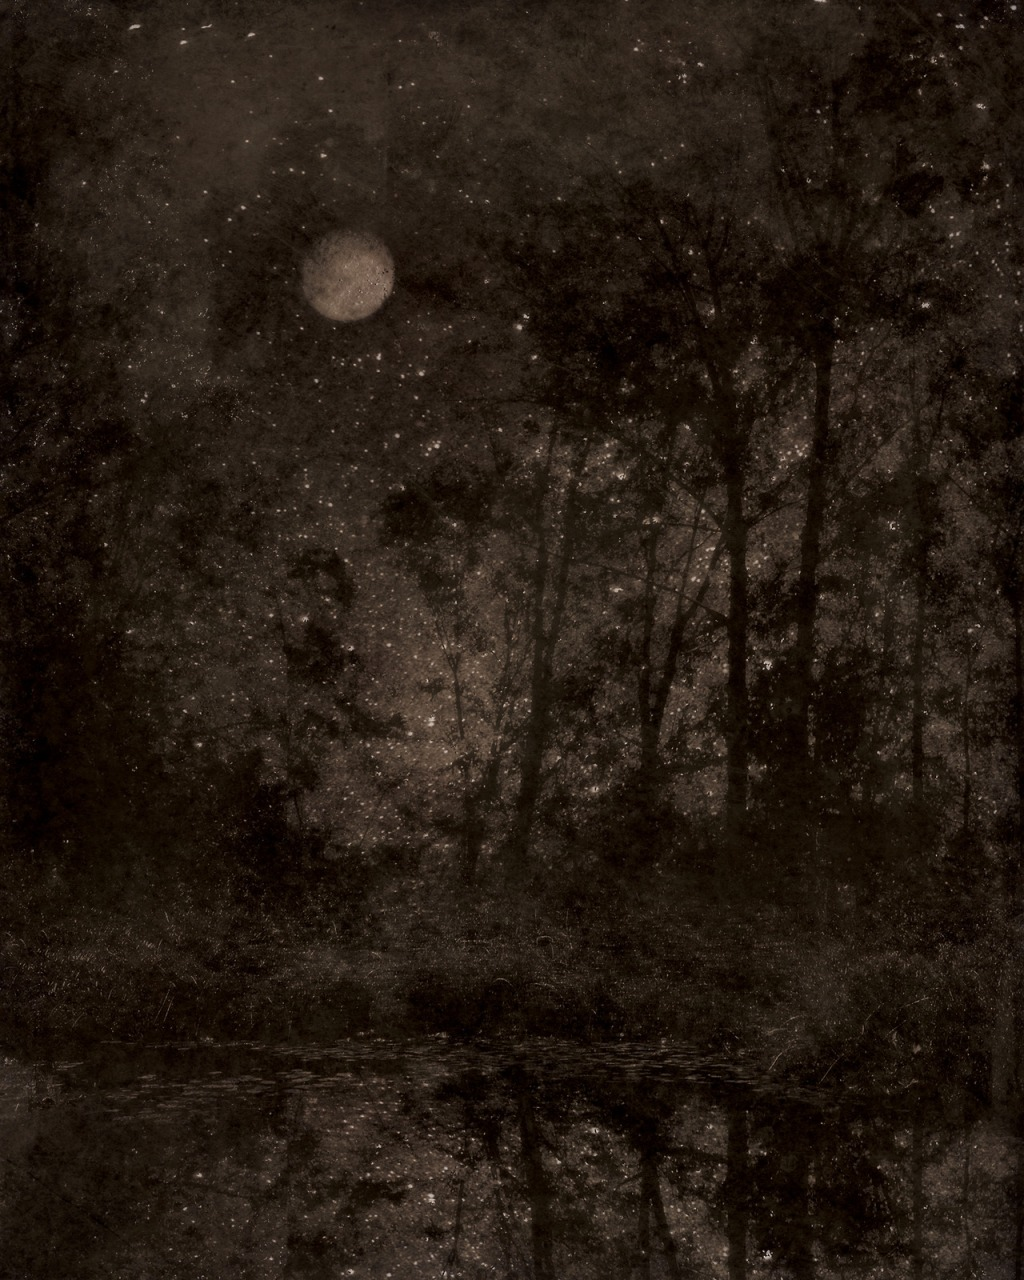 Nocturnal Landscape 108  - Digital Photograph printed on Hahnemühle Photo Rag Pearl by Ted Kincaid